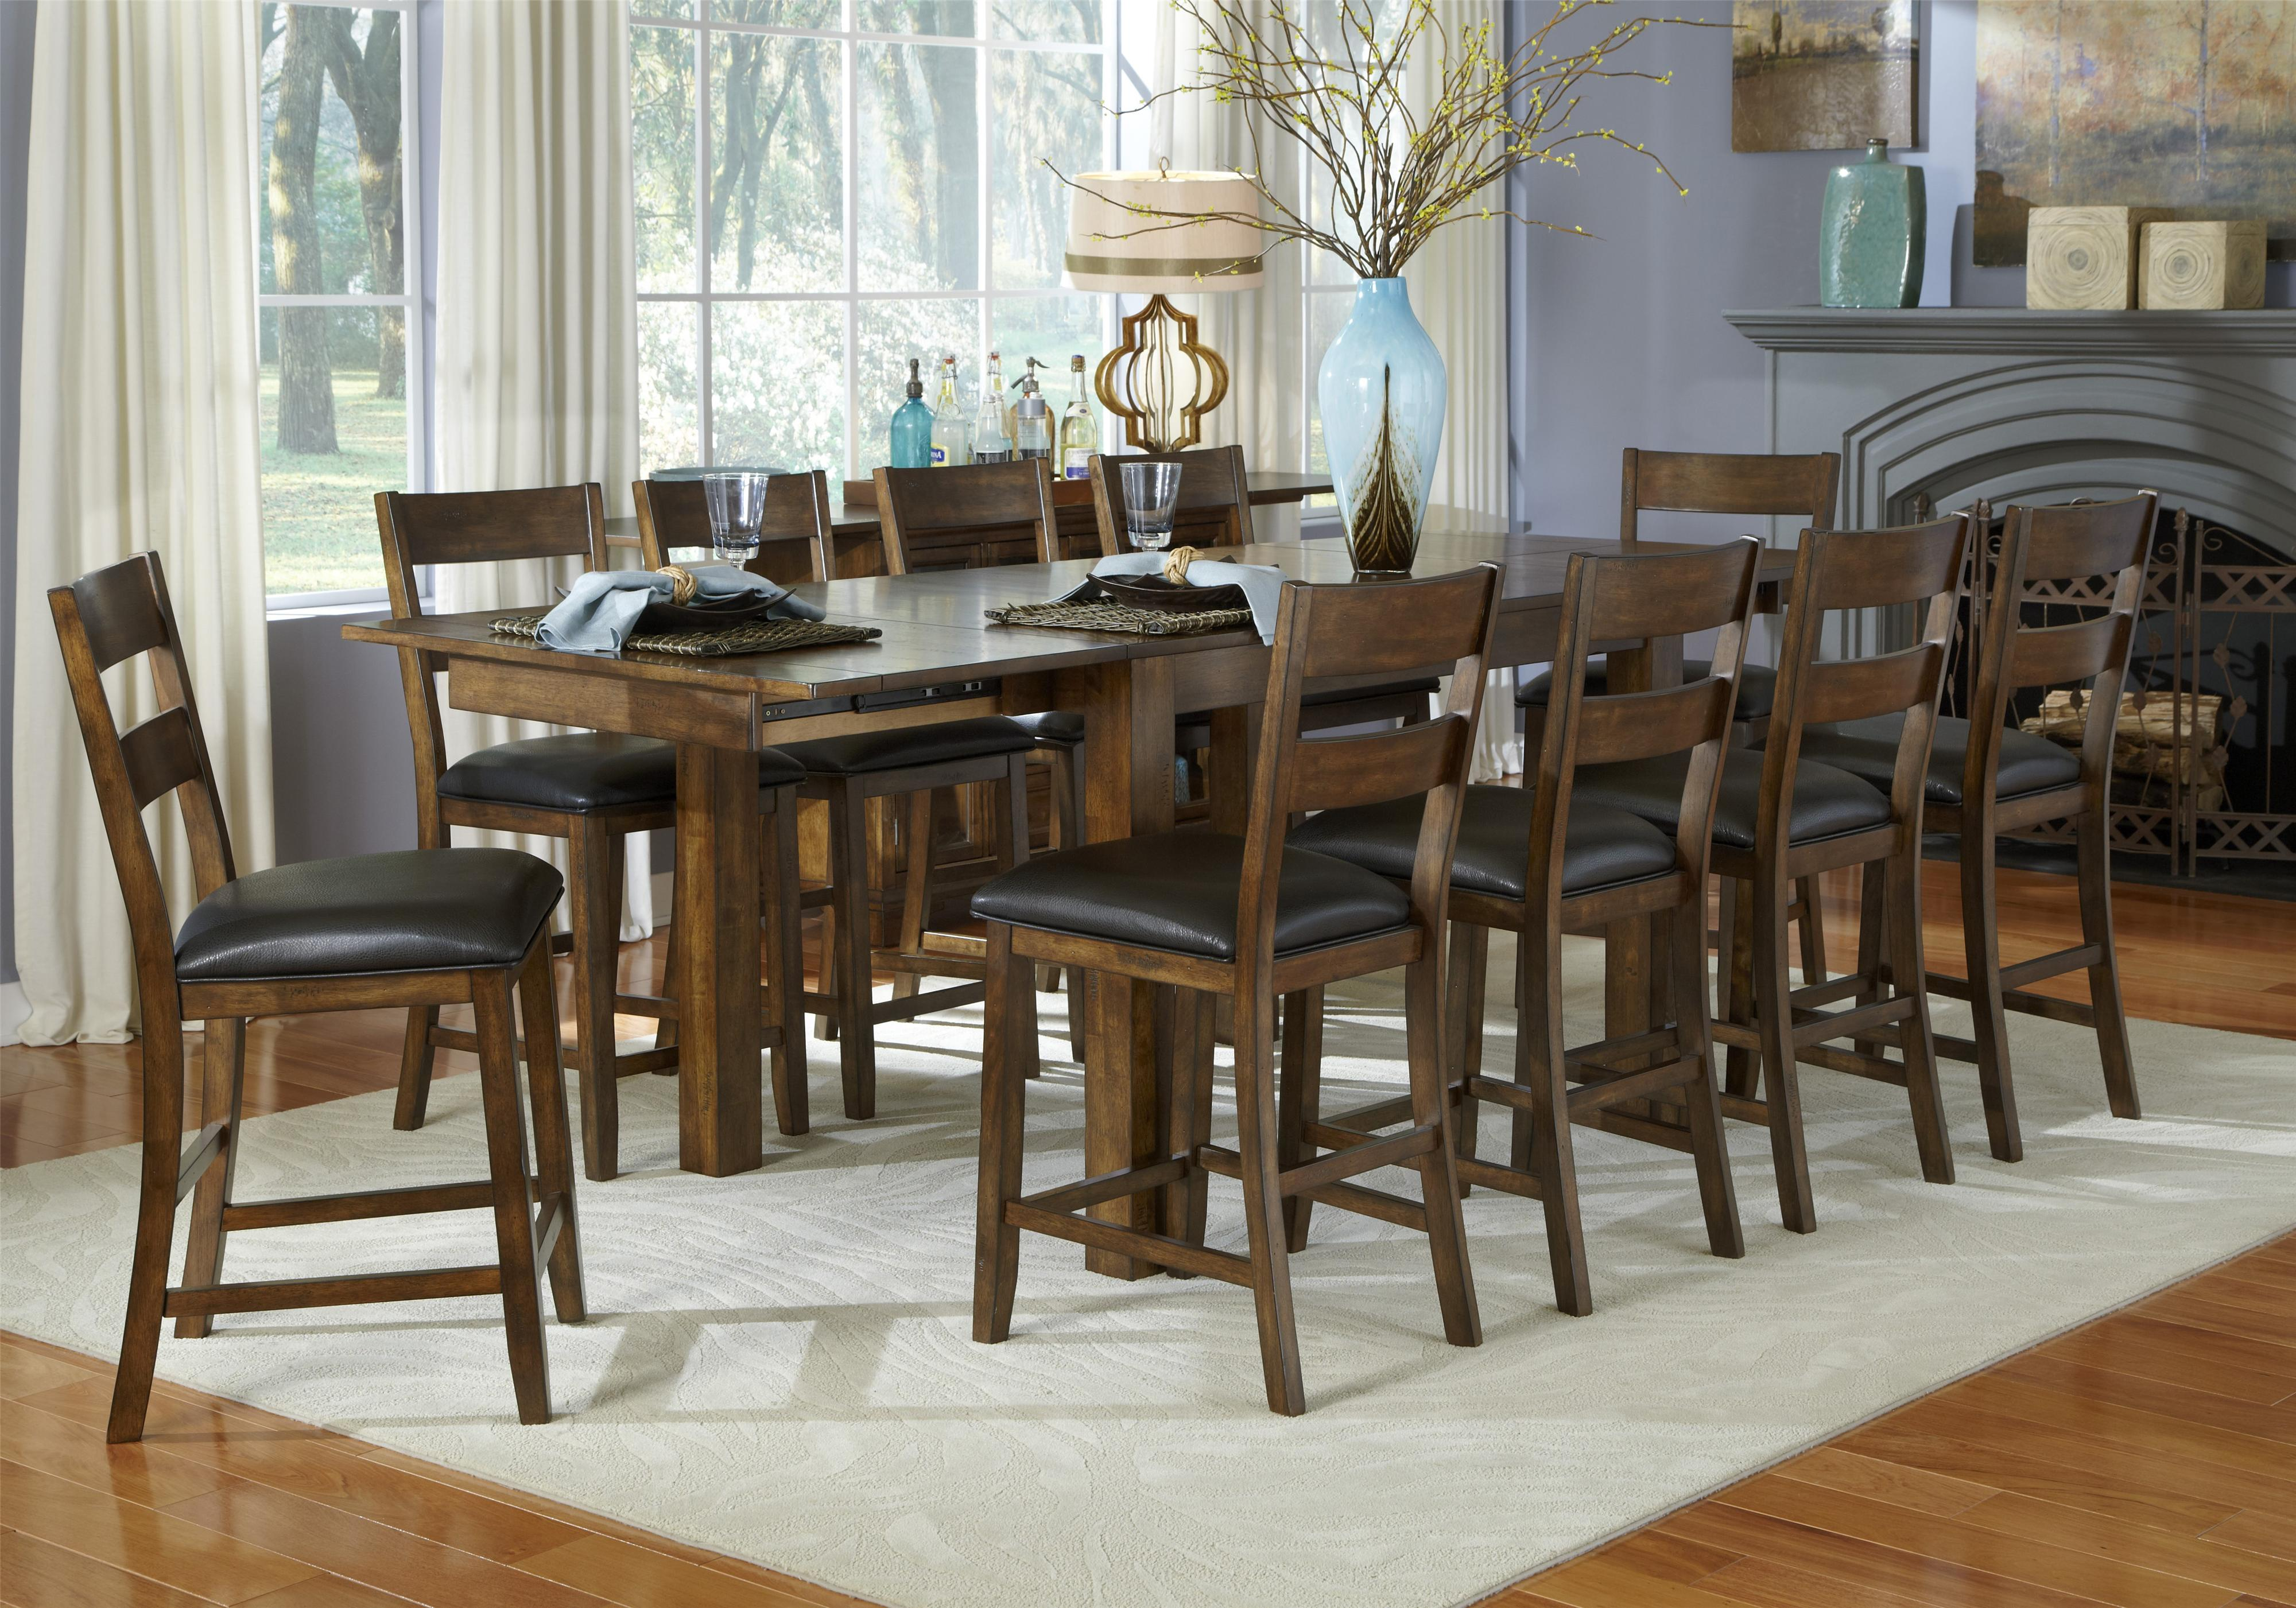 11 Piece Gathering Table and Chairs Set